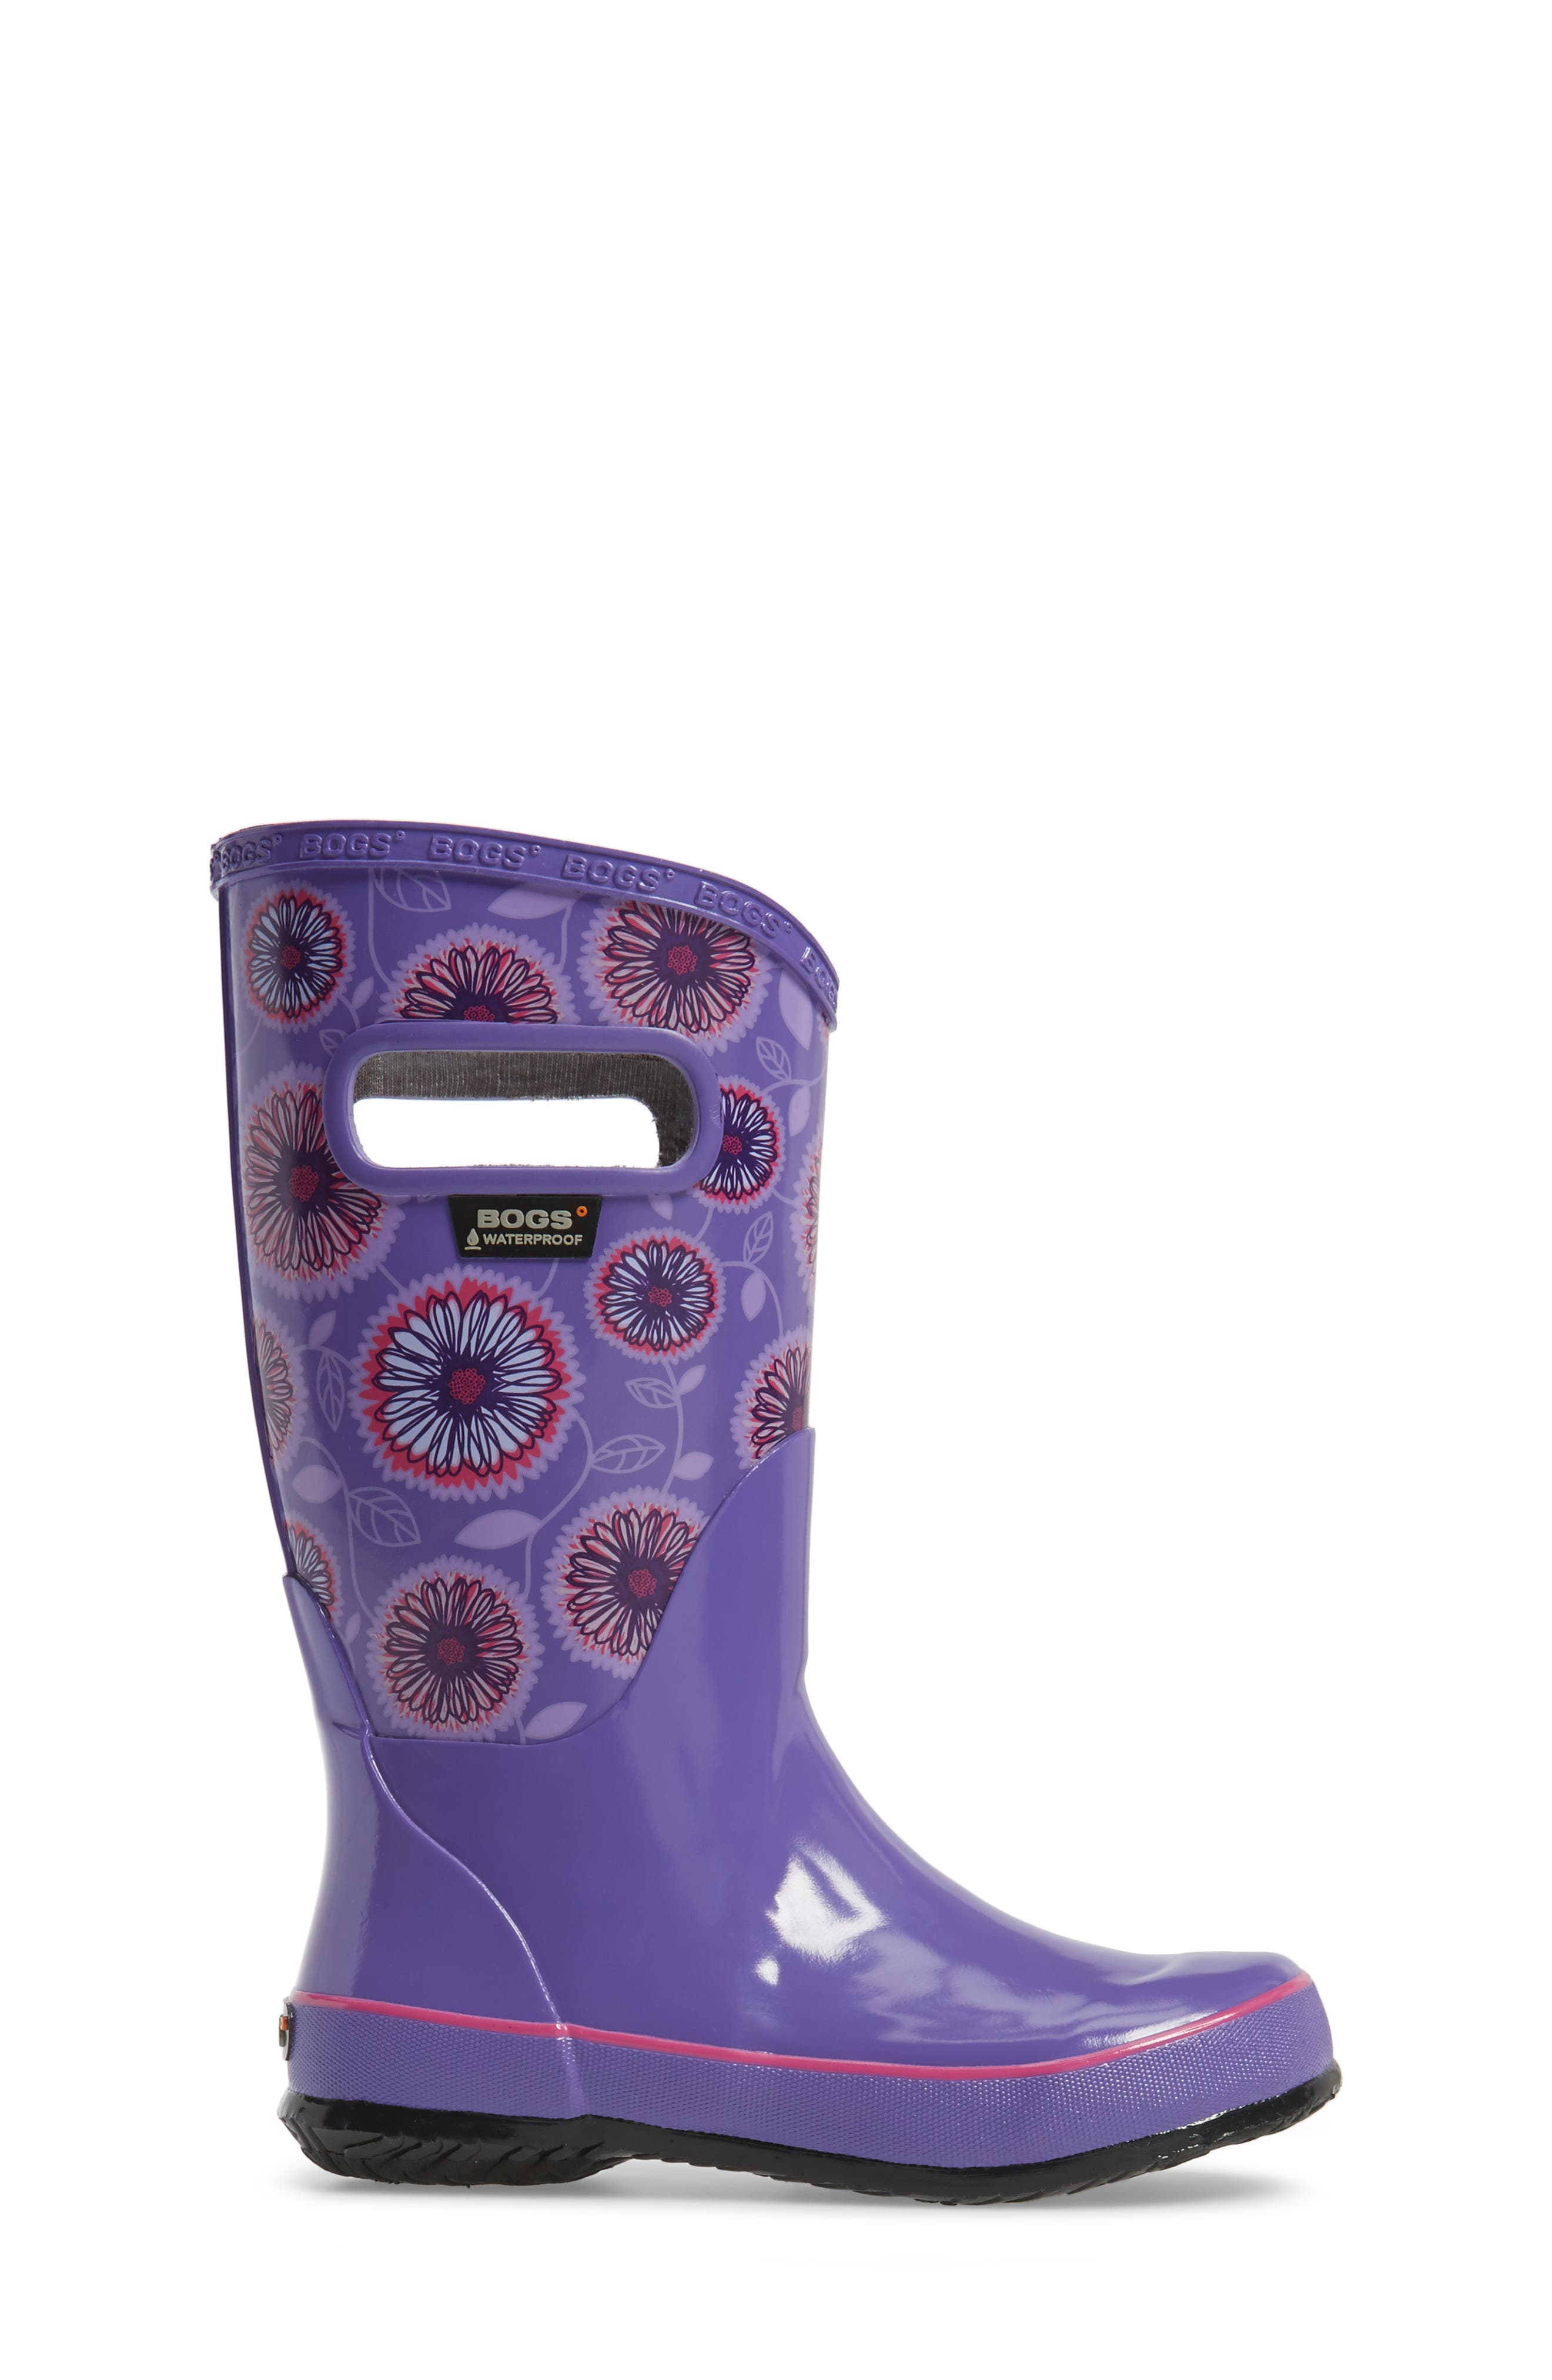 Wildflowers Rubber Rain Boot,                             Alternate thumbnail 3, color,                             500